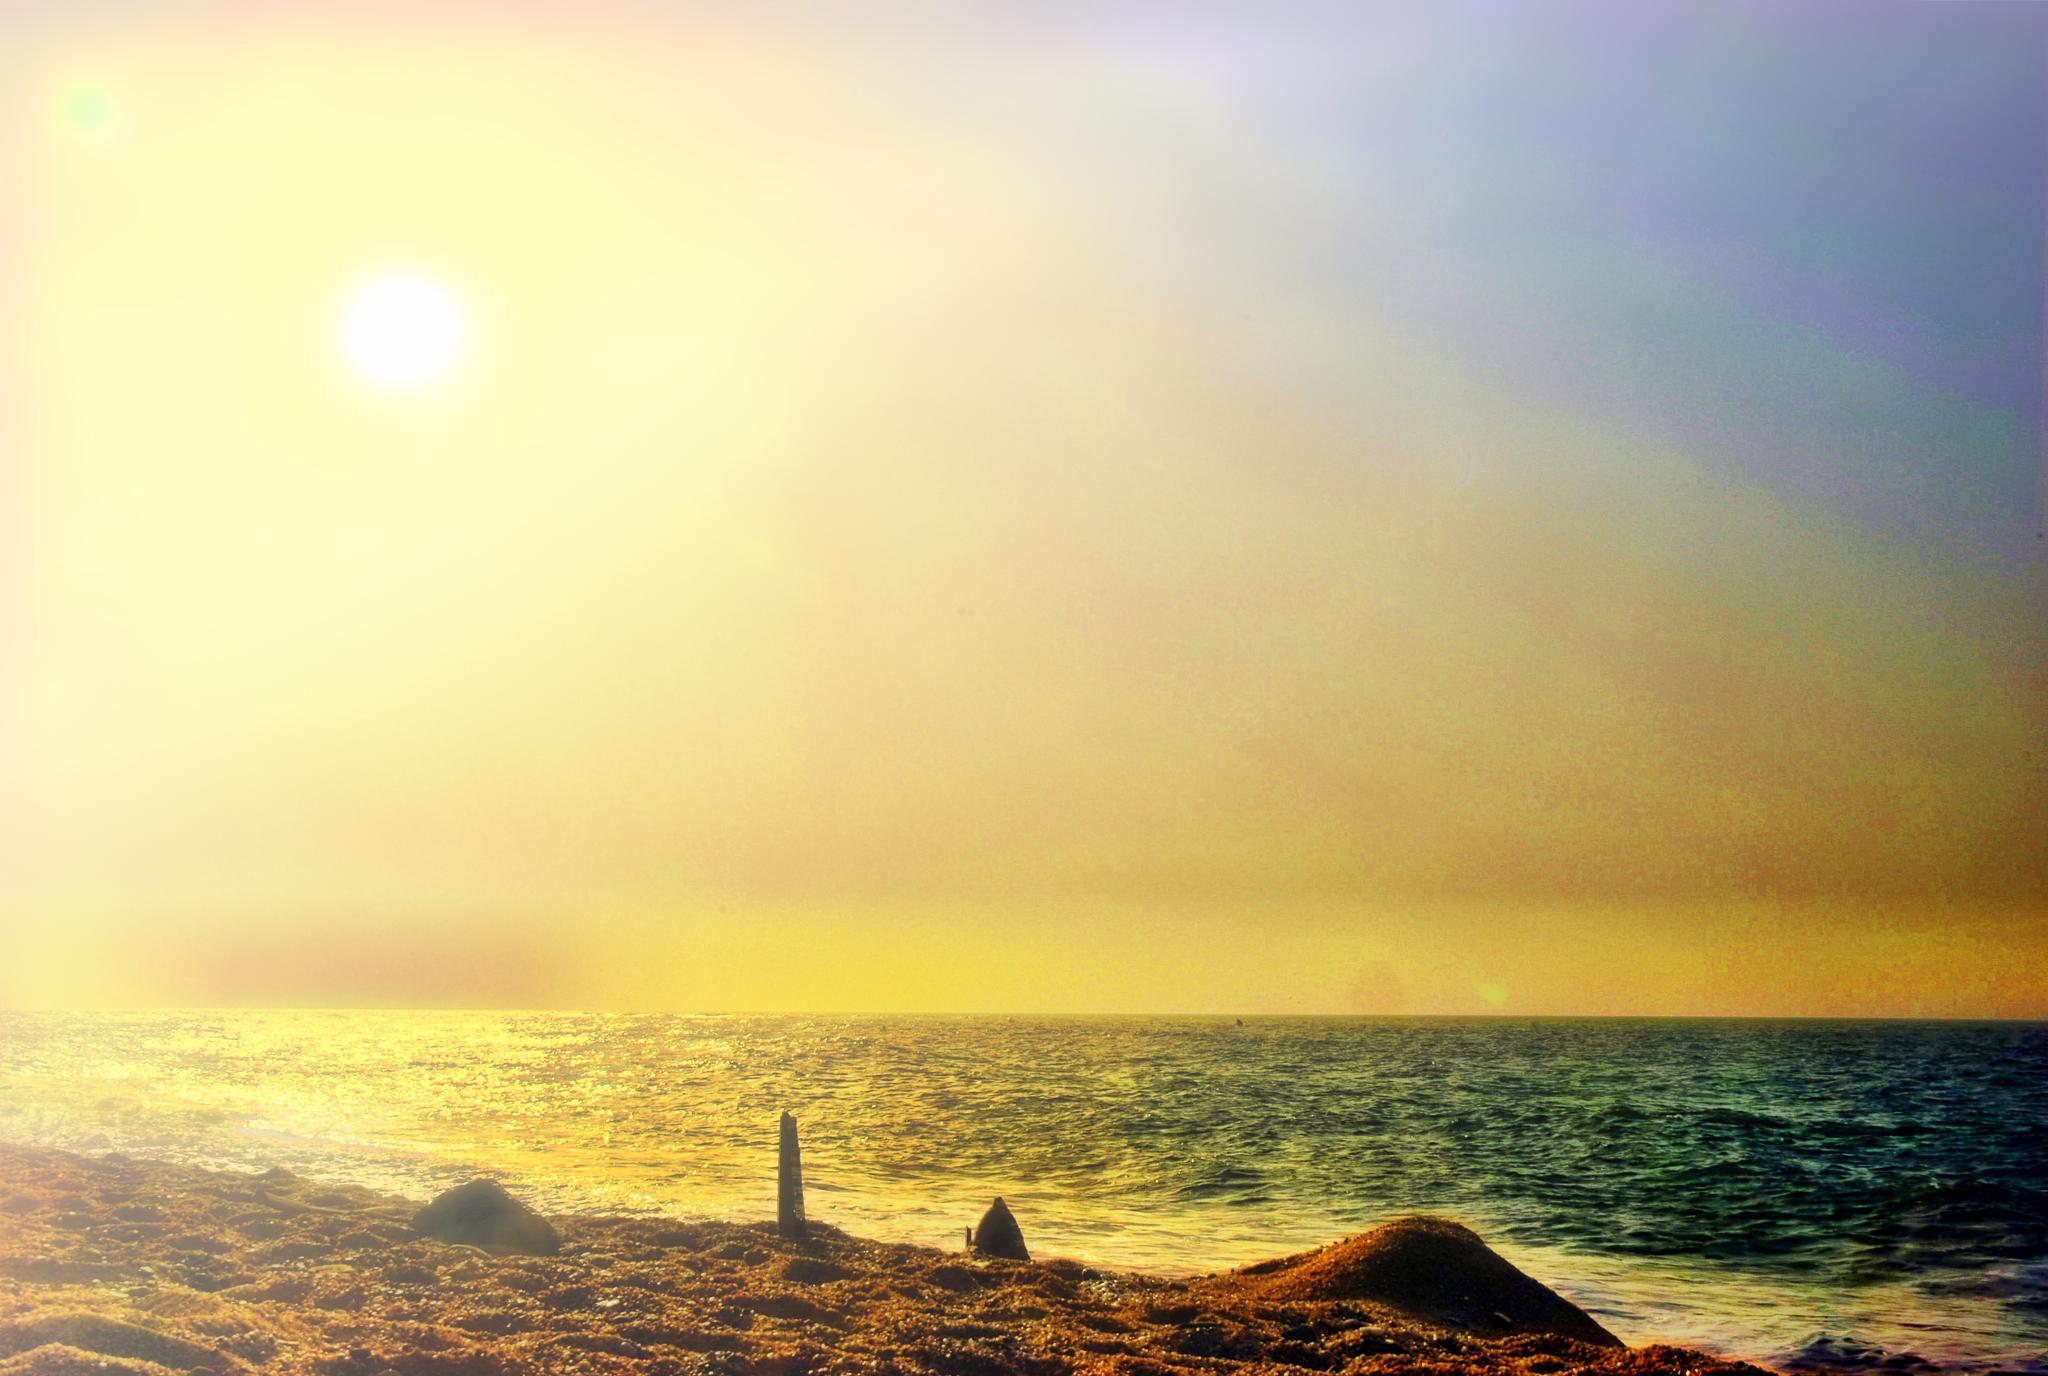 Afternoon in the beach by Aker